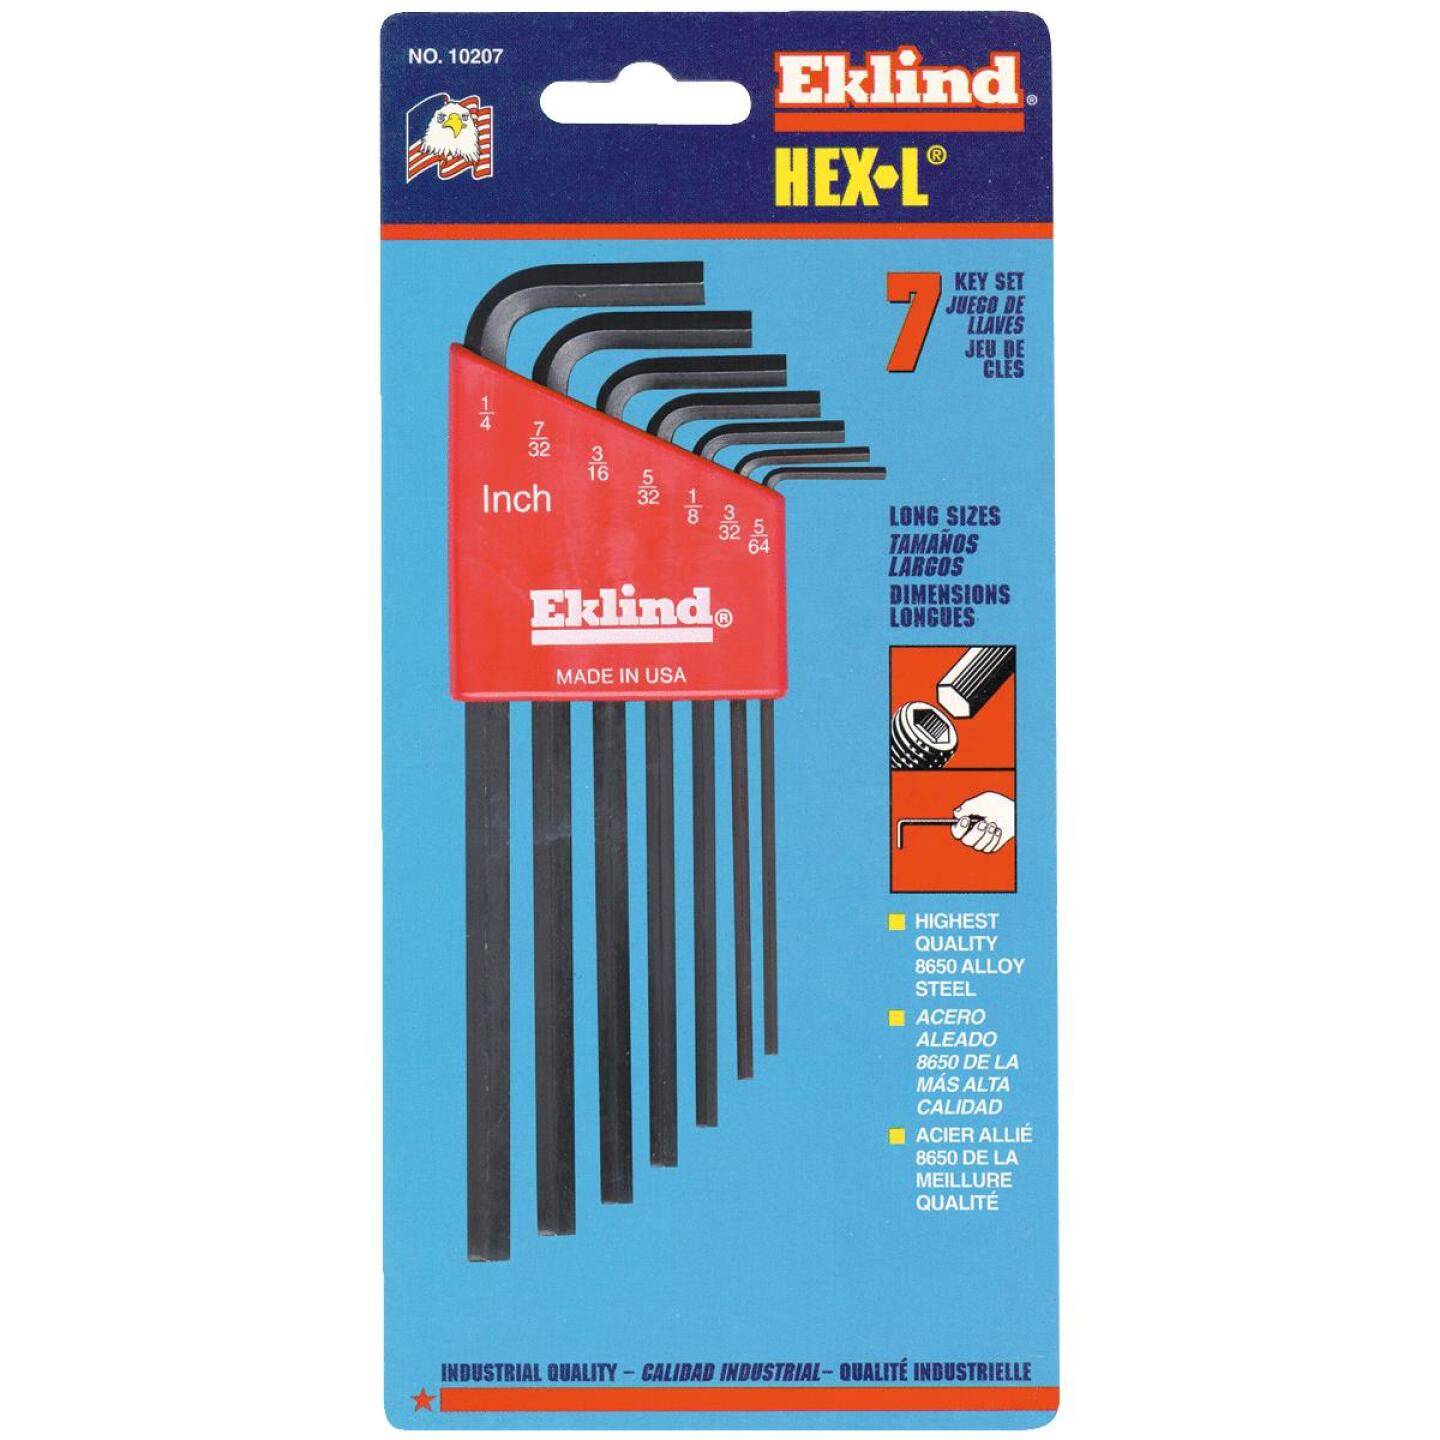 Eklind Long Arm Hex Key Set, 7-Piece Image 1